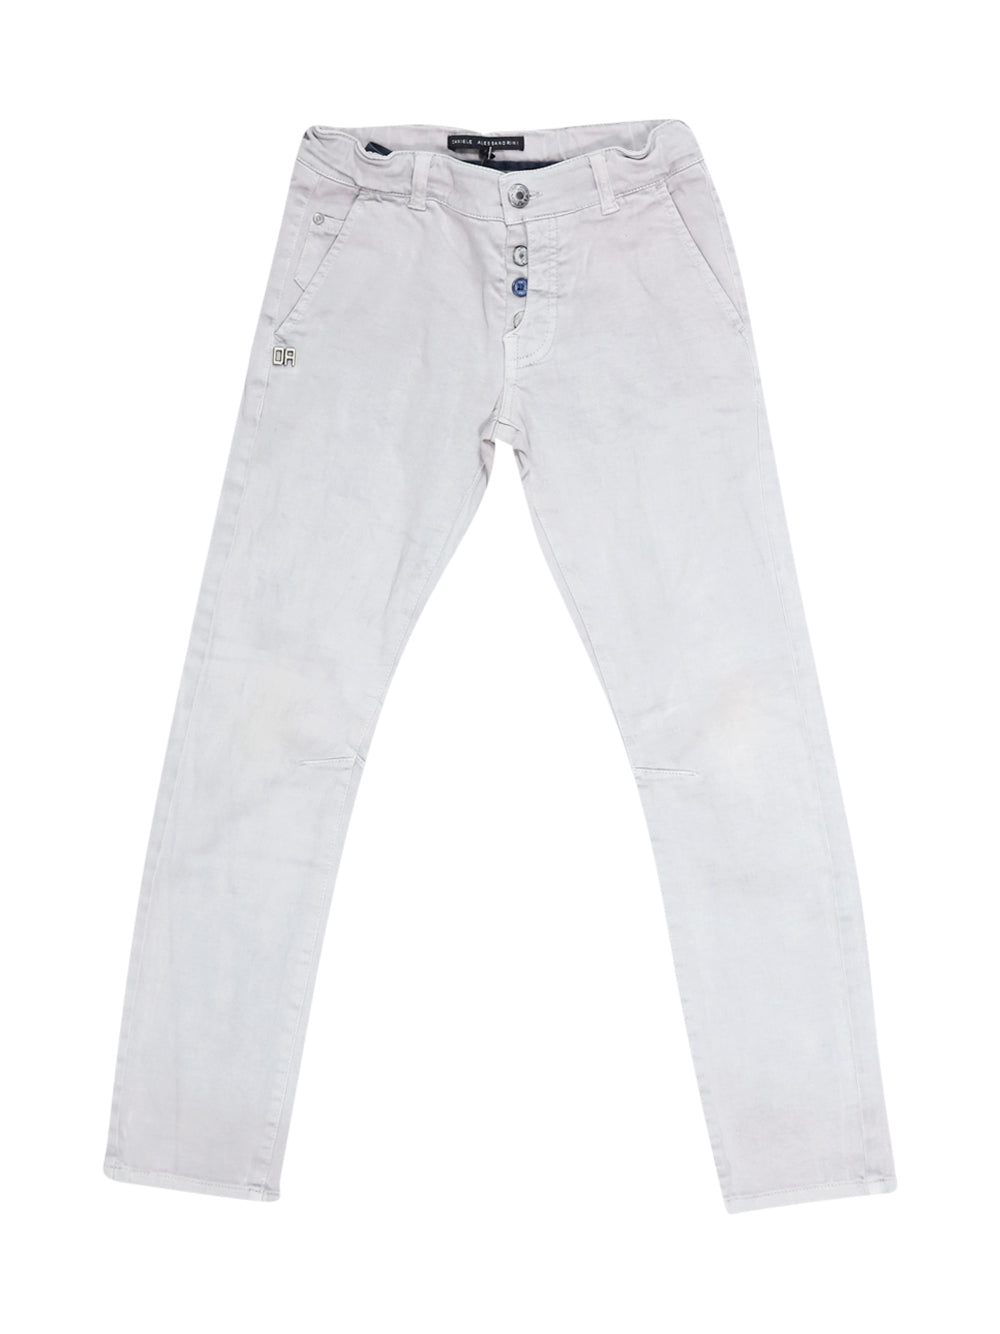 Front photo of Preloved Daniele Alessandrini Grey Boy's trousers - size 7-8 yrs